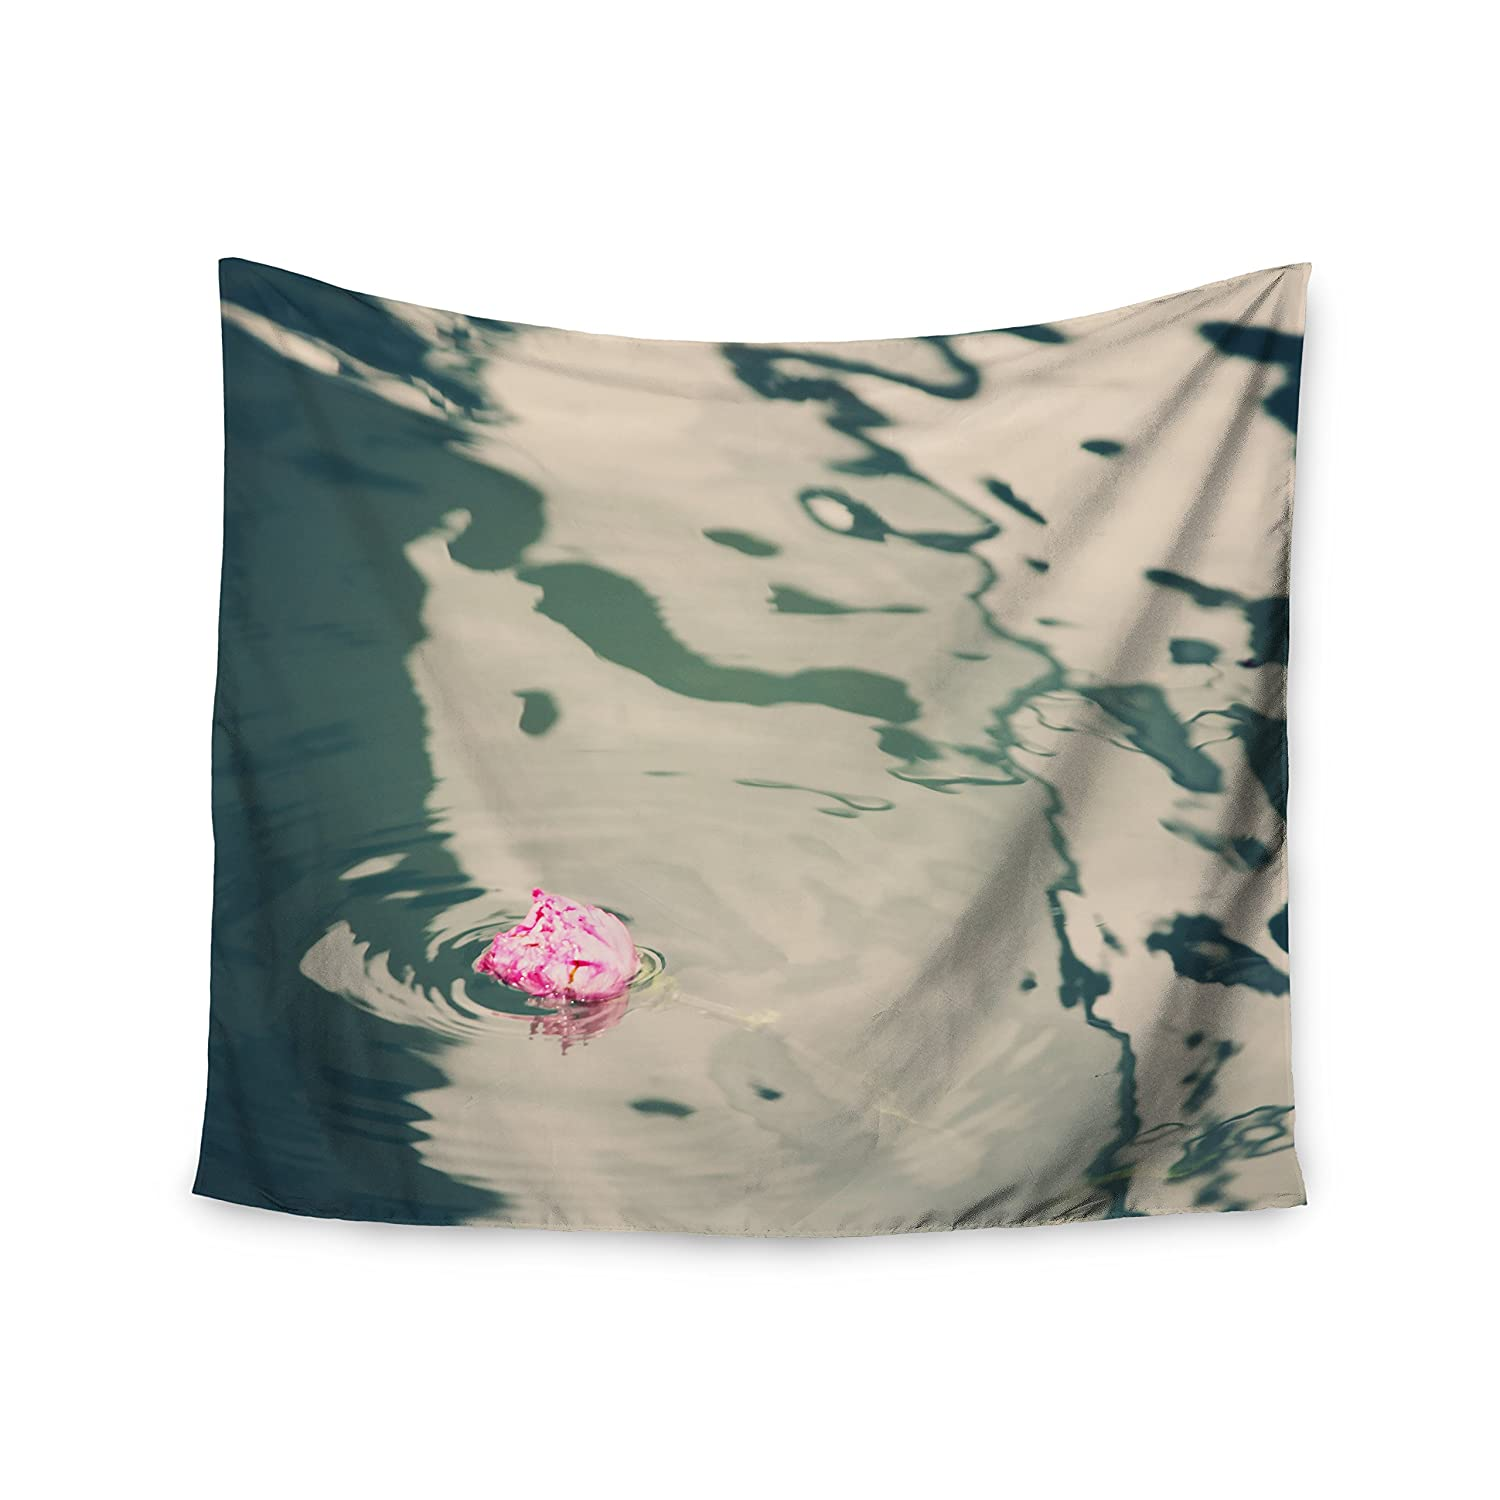 Kess InHouse Sylvia Coomes Venetian Rose Blue Pink Wall Tapestry 51 x 60